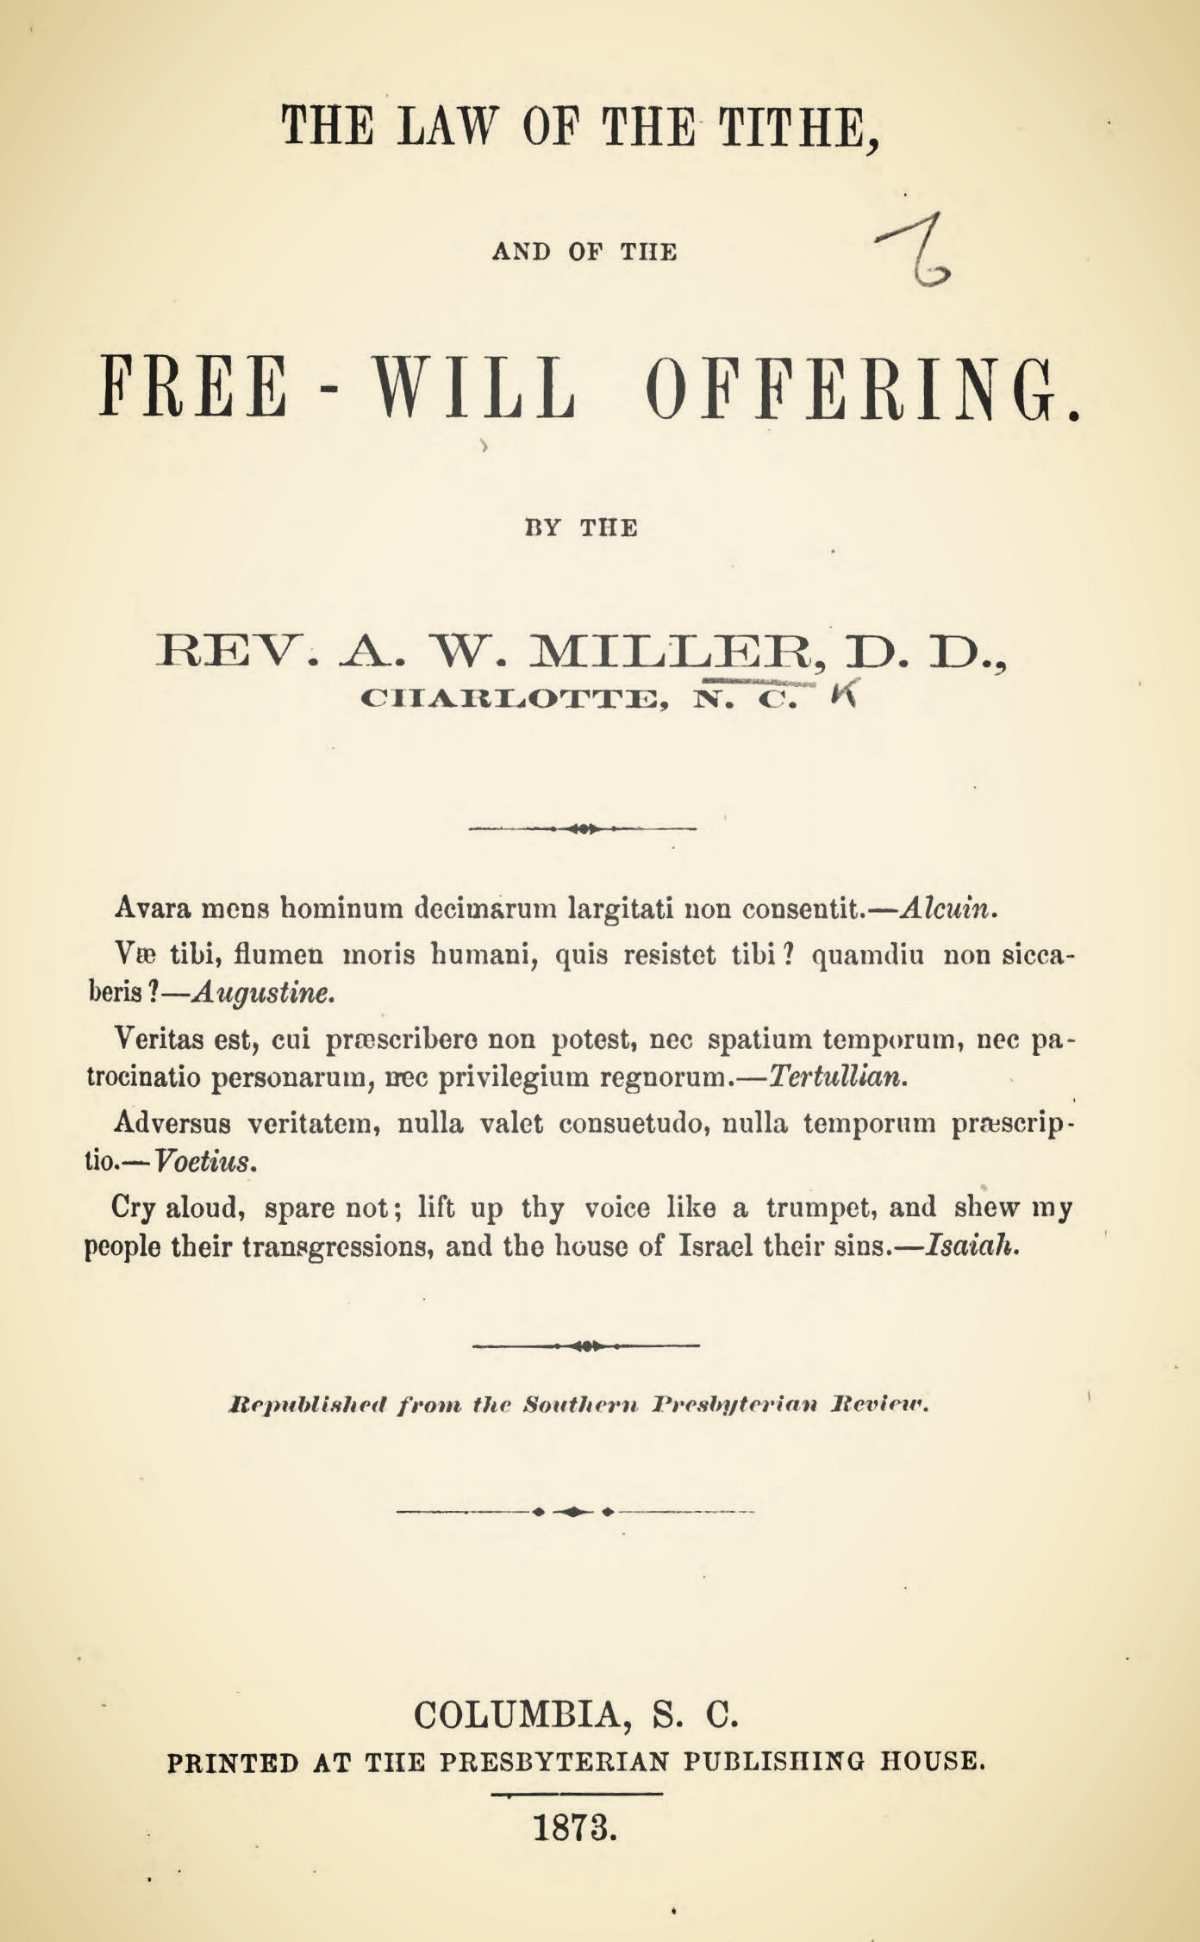 Miller, Arnold W., The Law of the Tithe, and of the Free-Will Offering Title Page.jpg